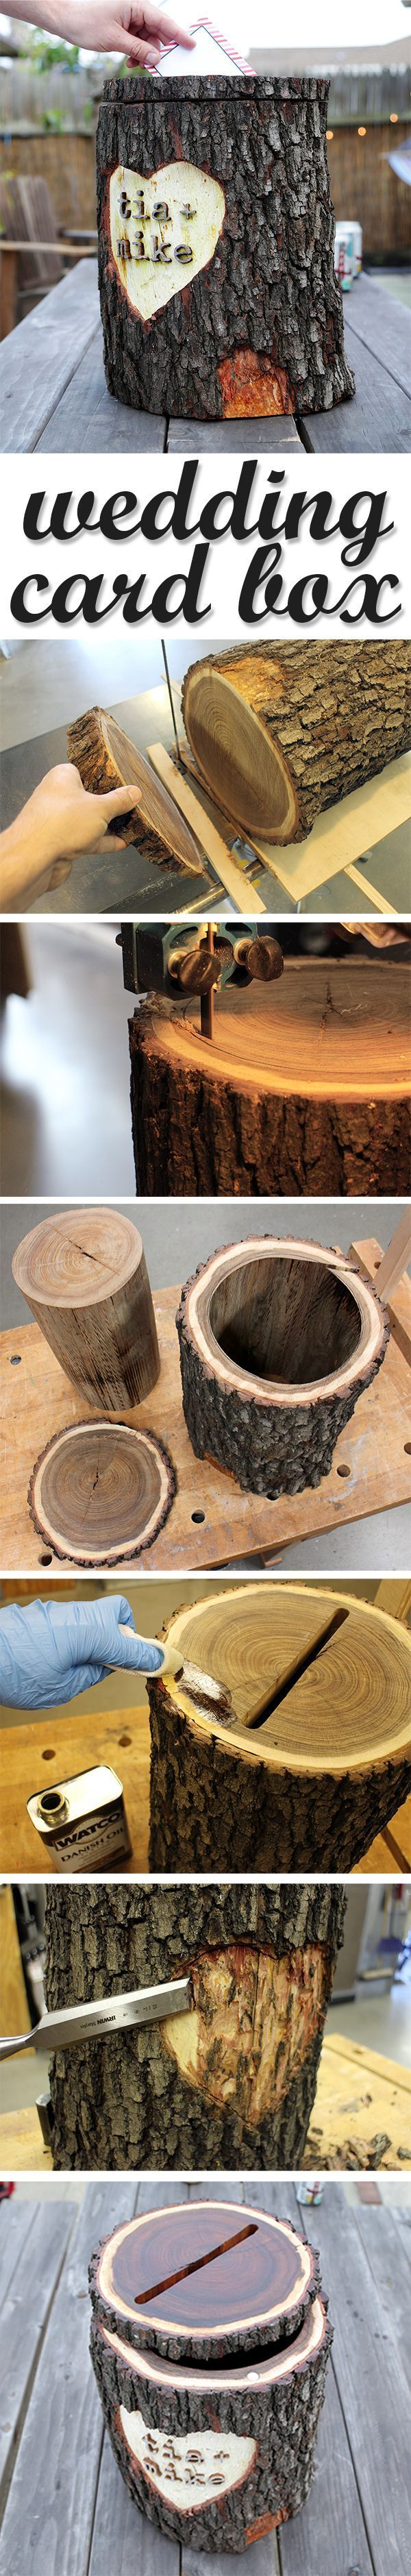 DIY rustic wedding card box idea. Turn a log into a card box for a rustic wedding